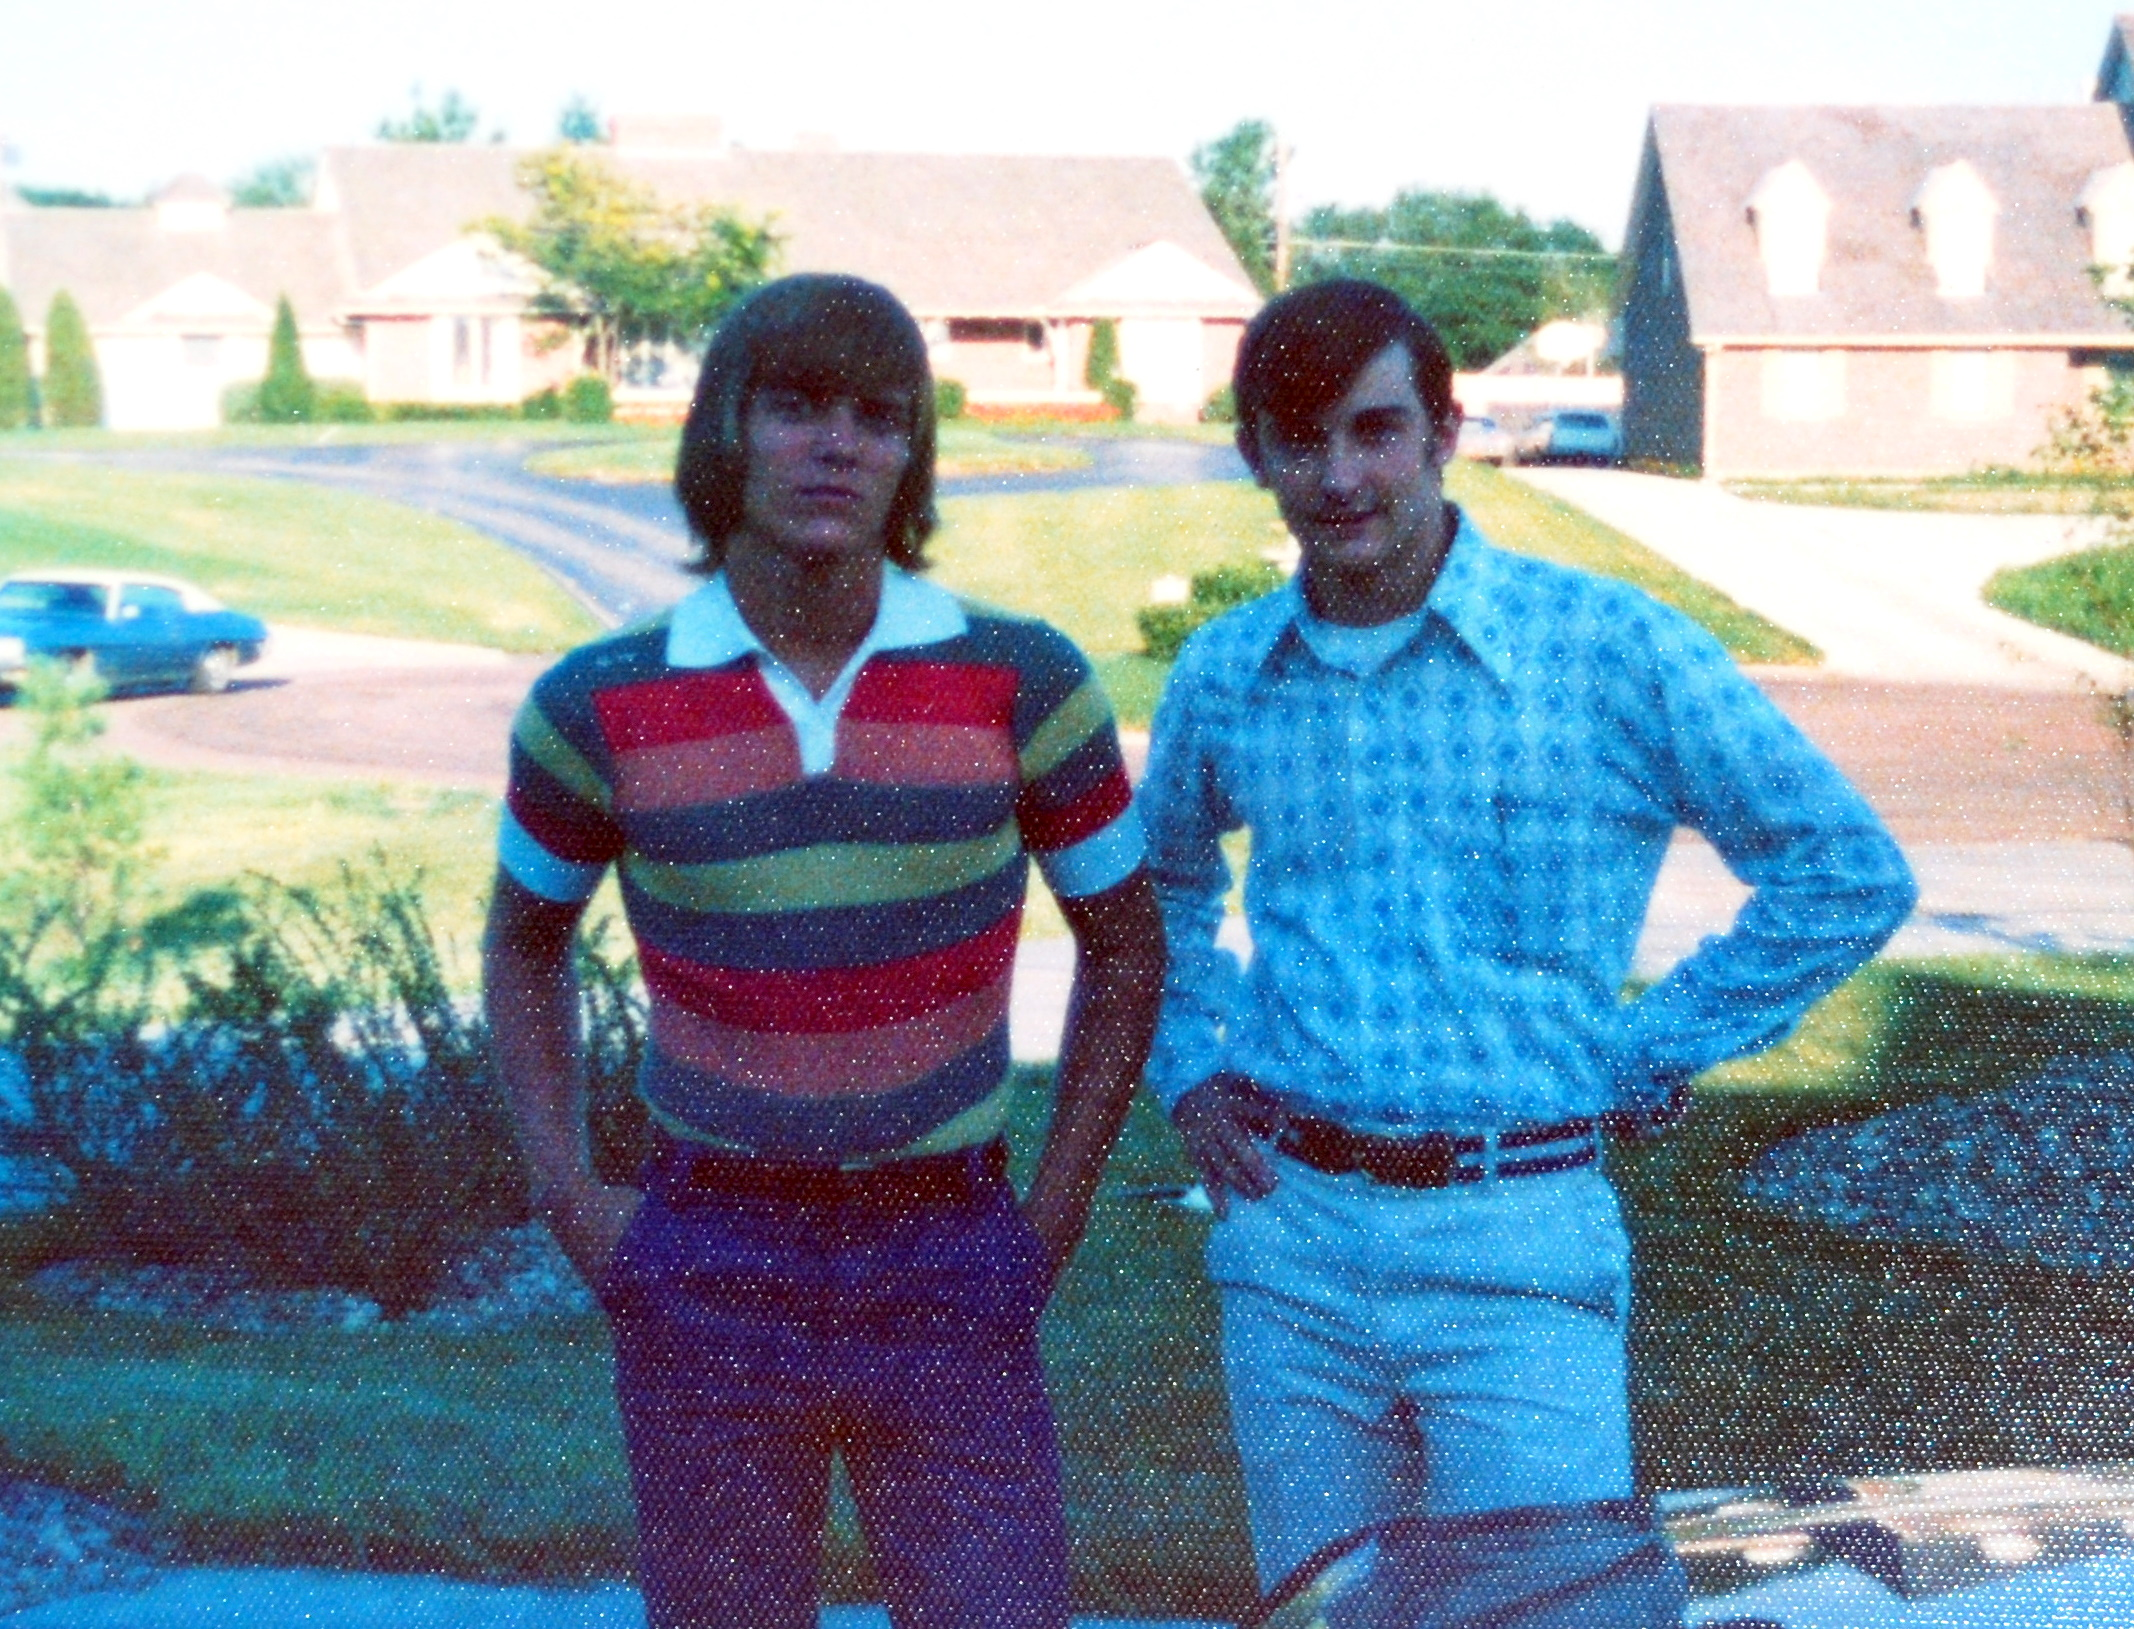 John and Jim off to college